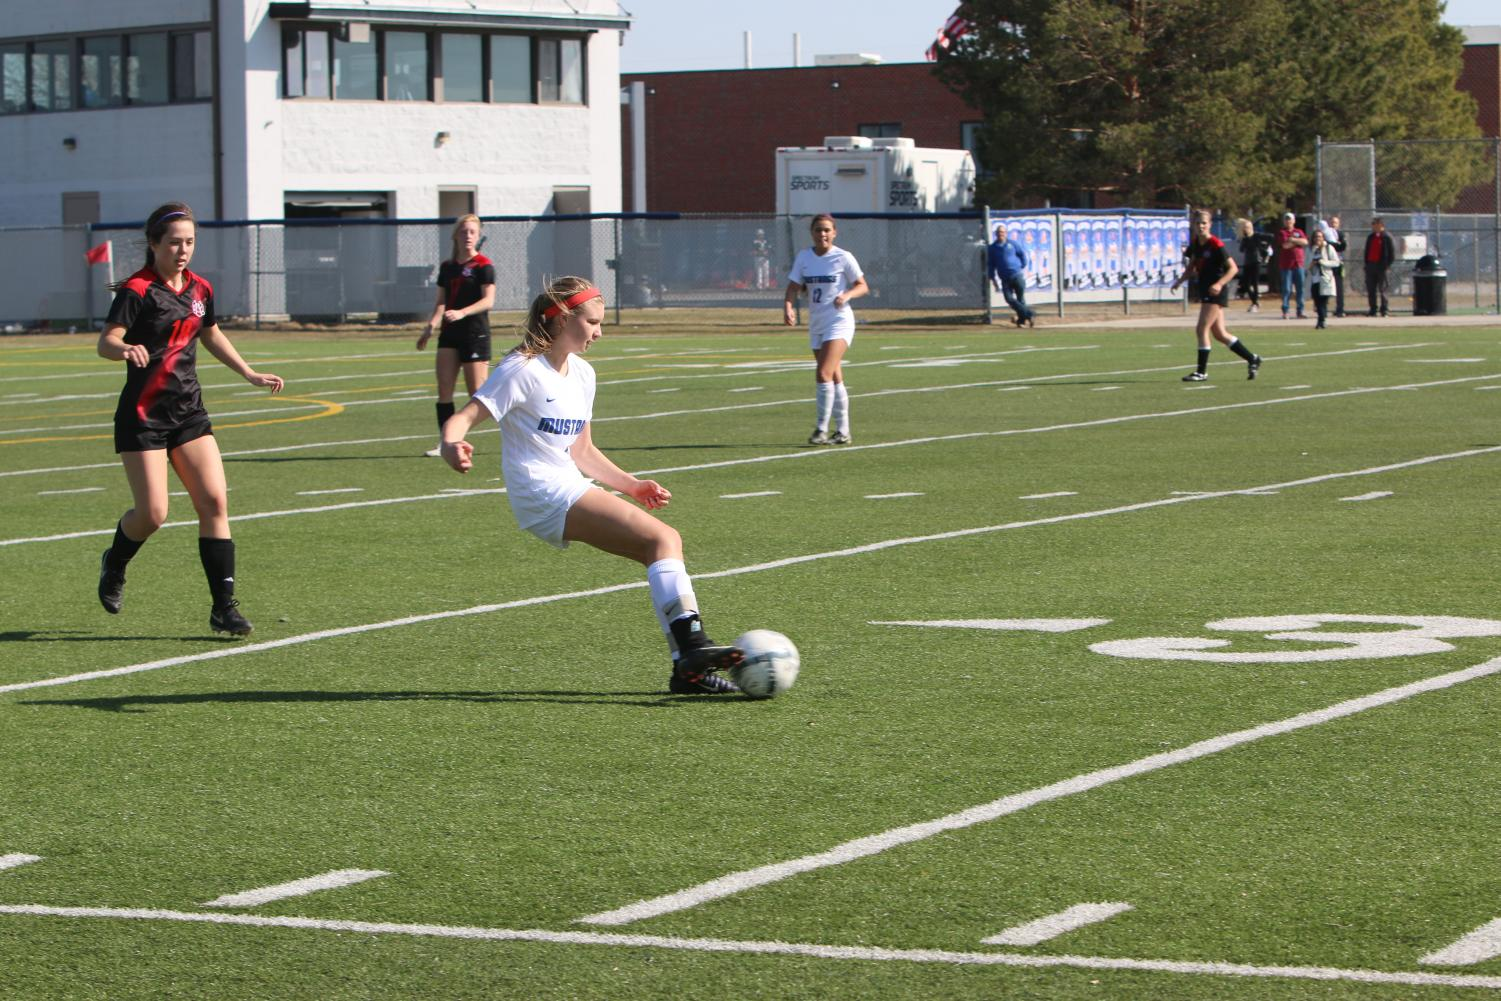 Freshman Campbell Zimmers dribbles the ball up field. The team played Westside and won the game in a shootout.